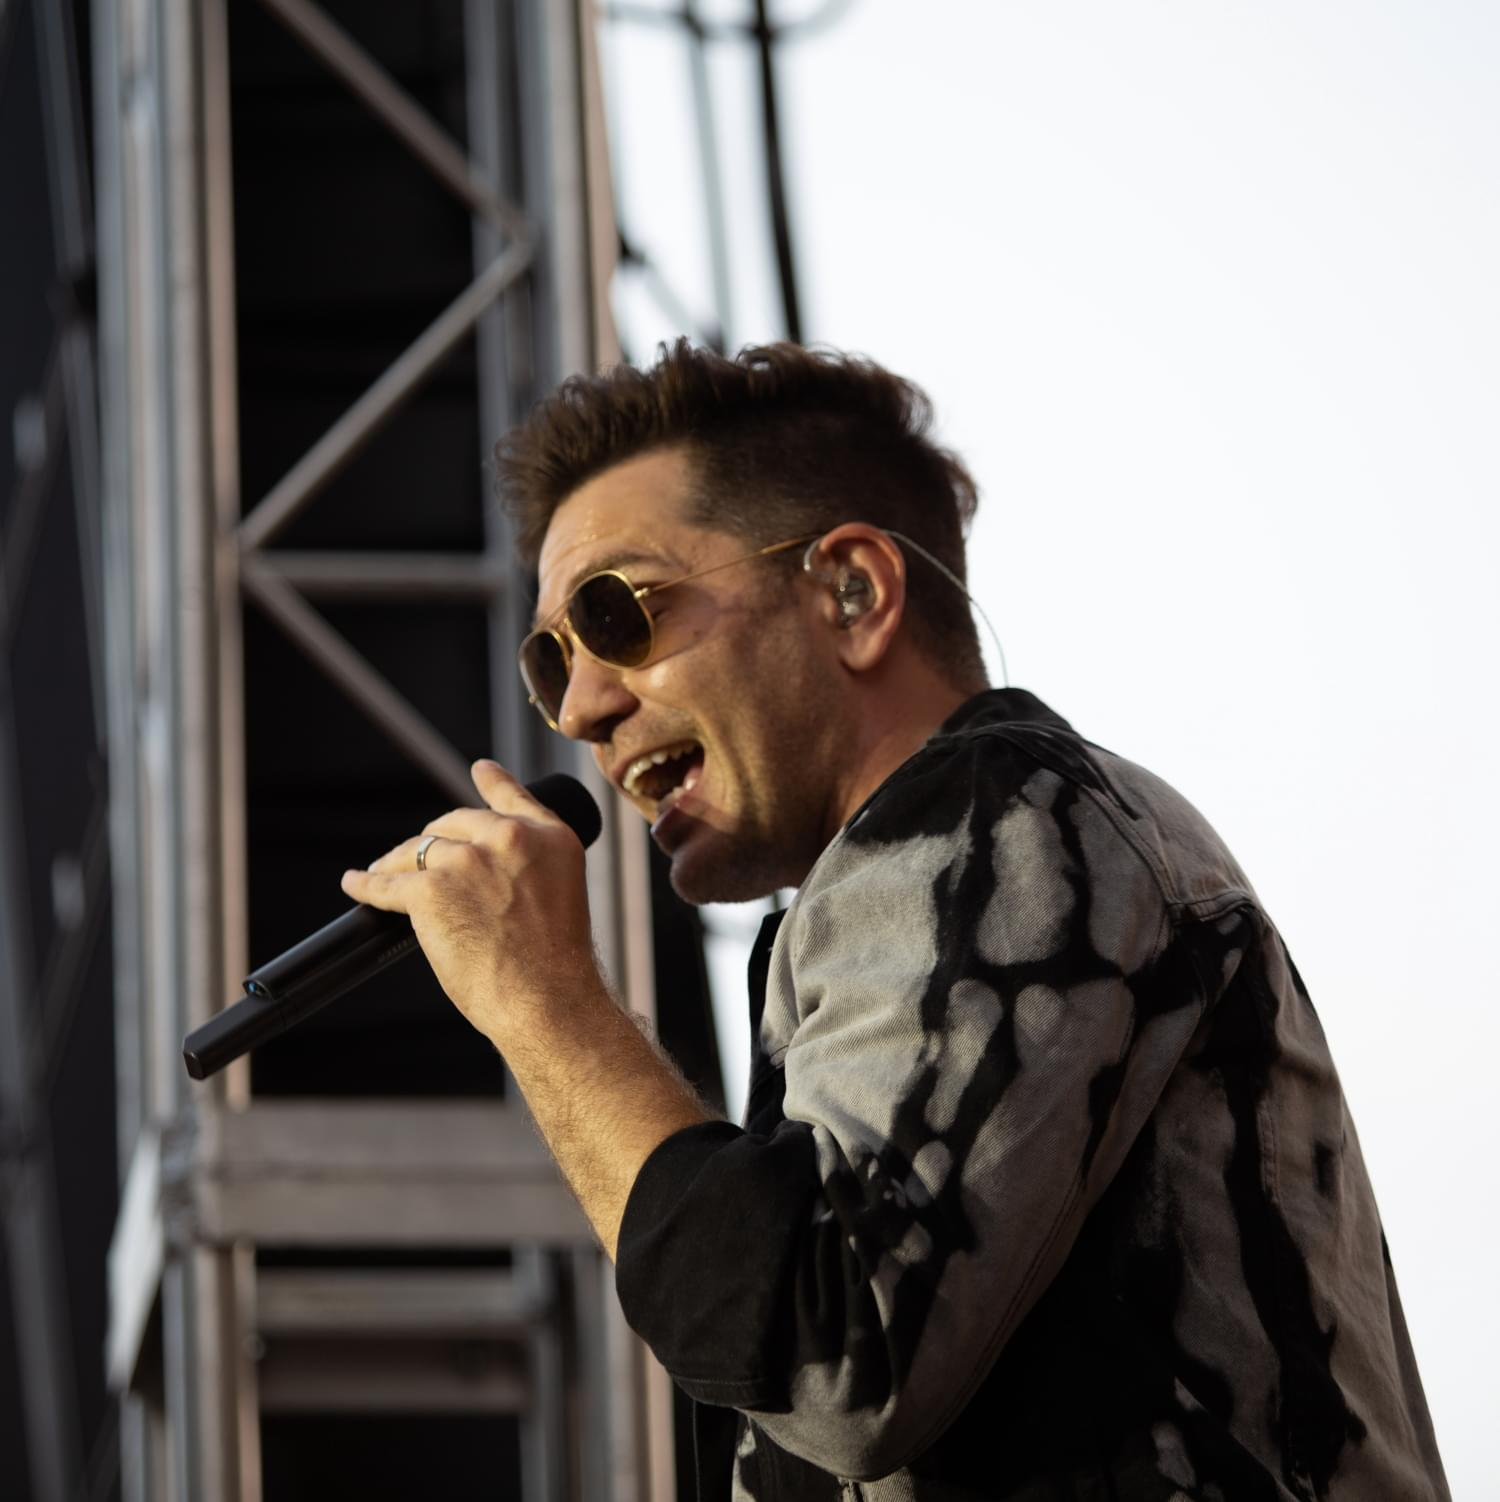 Andy Grammer at Wednesday Nite Live in Stamford